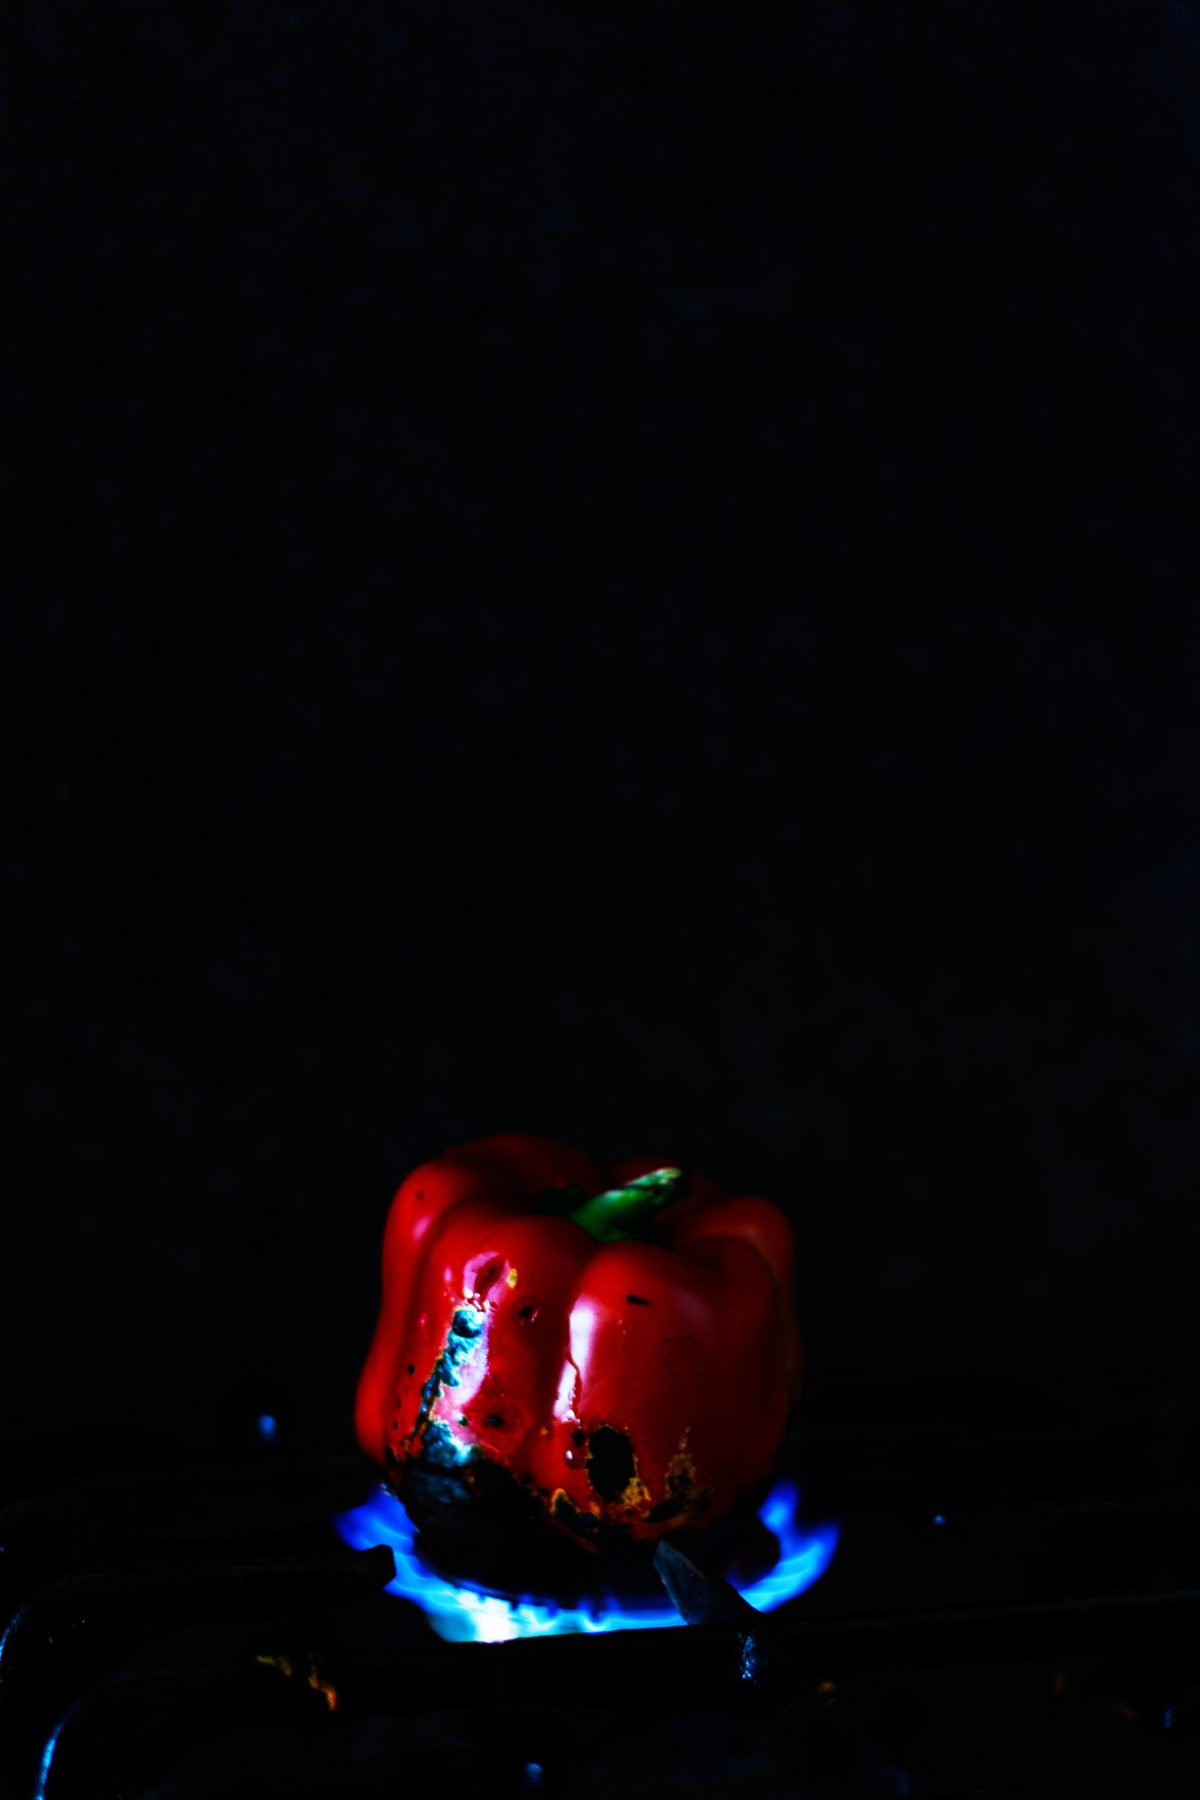 Roasting bell pepper - food photography - thespiceadventuress.com